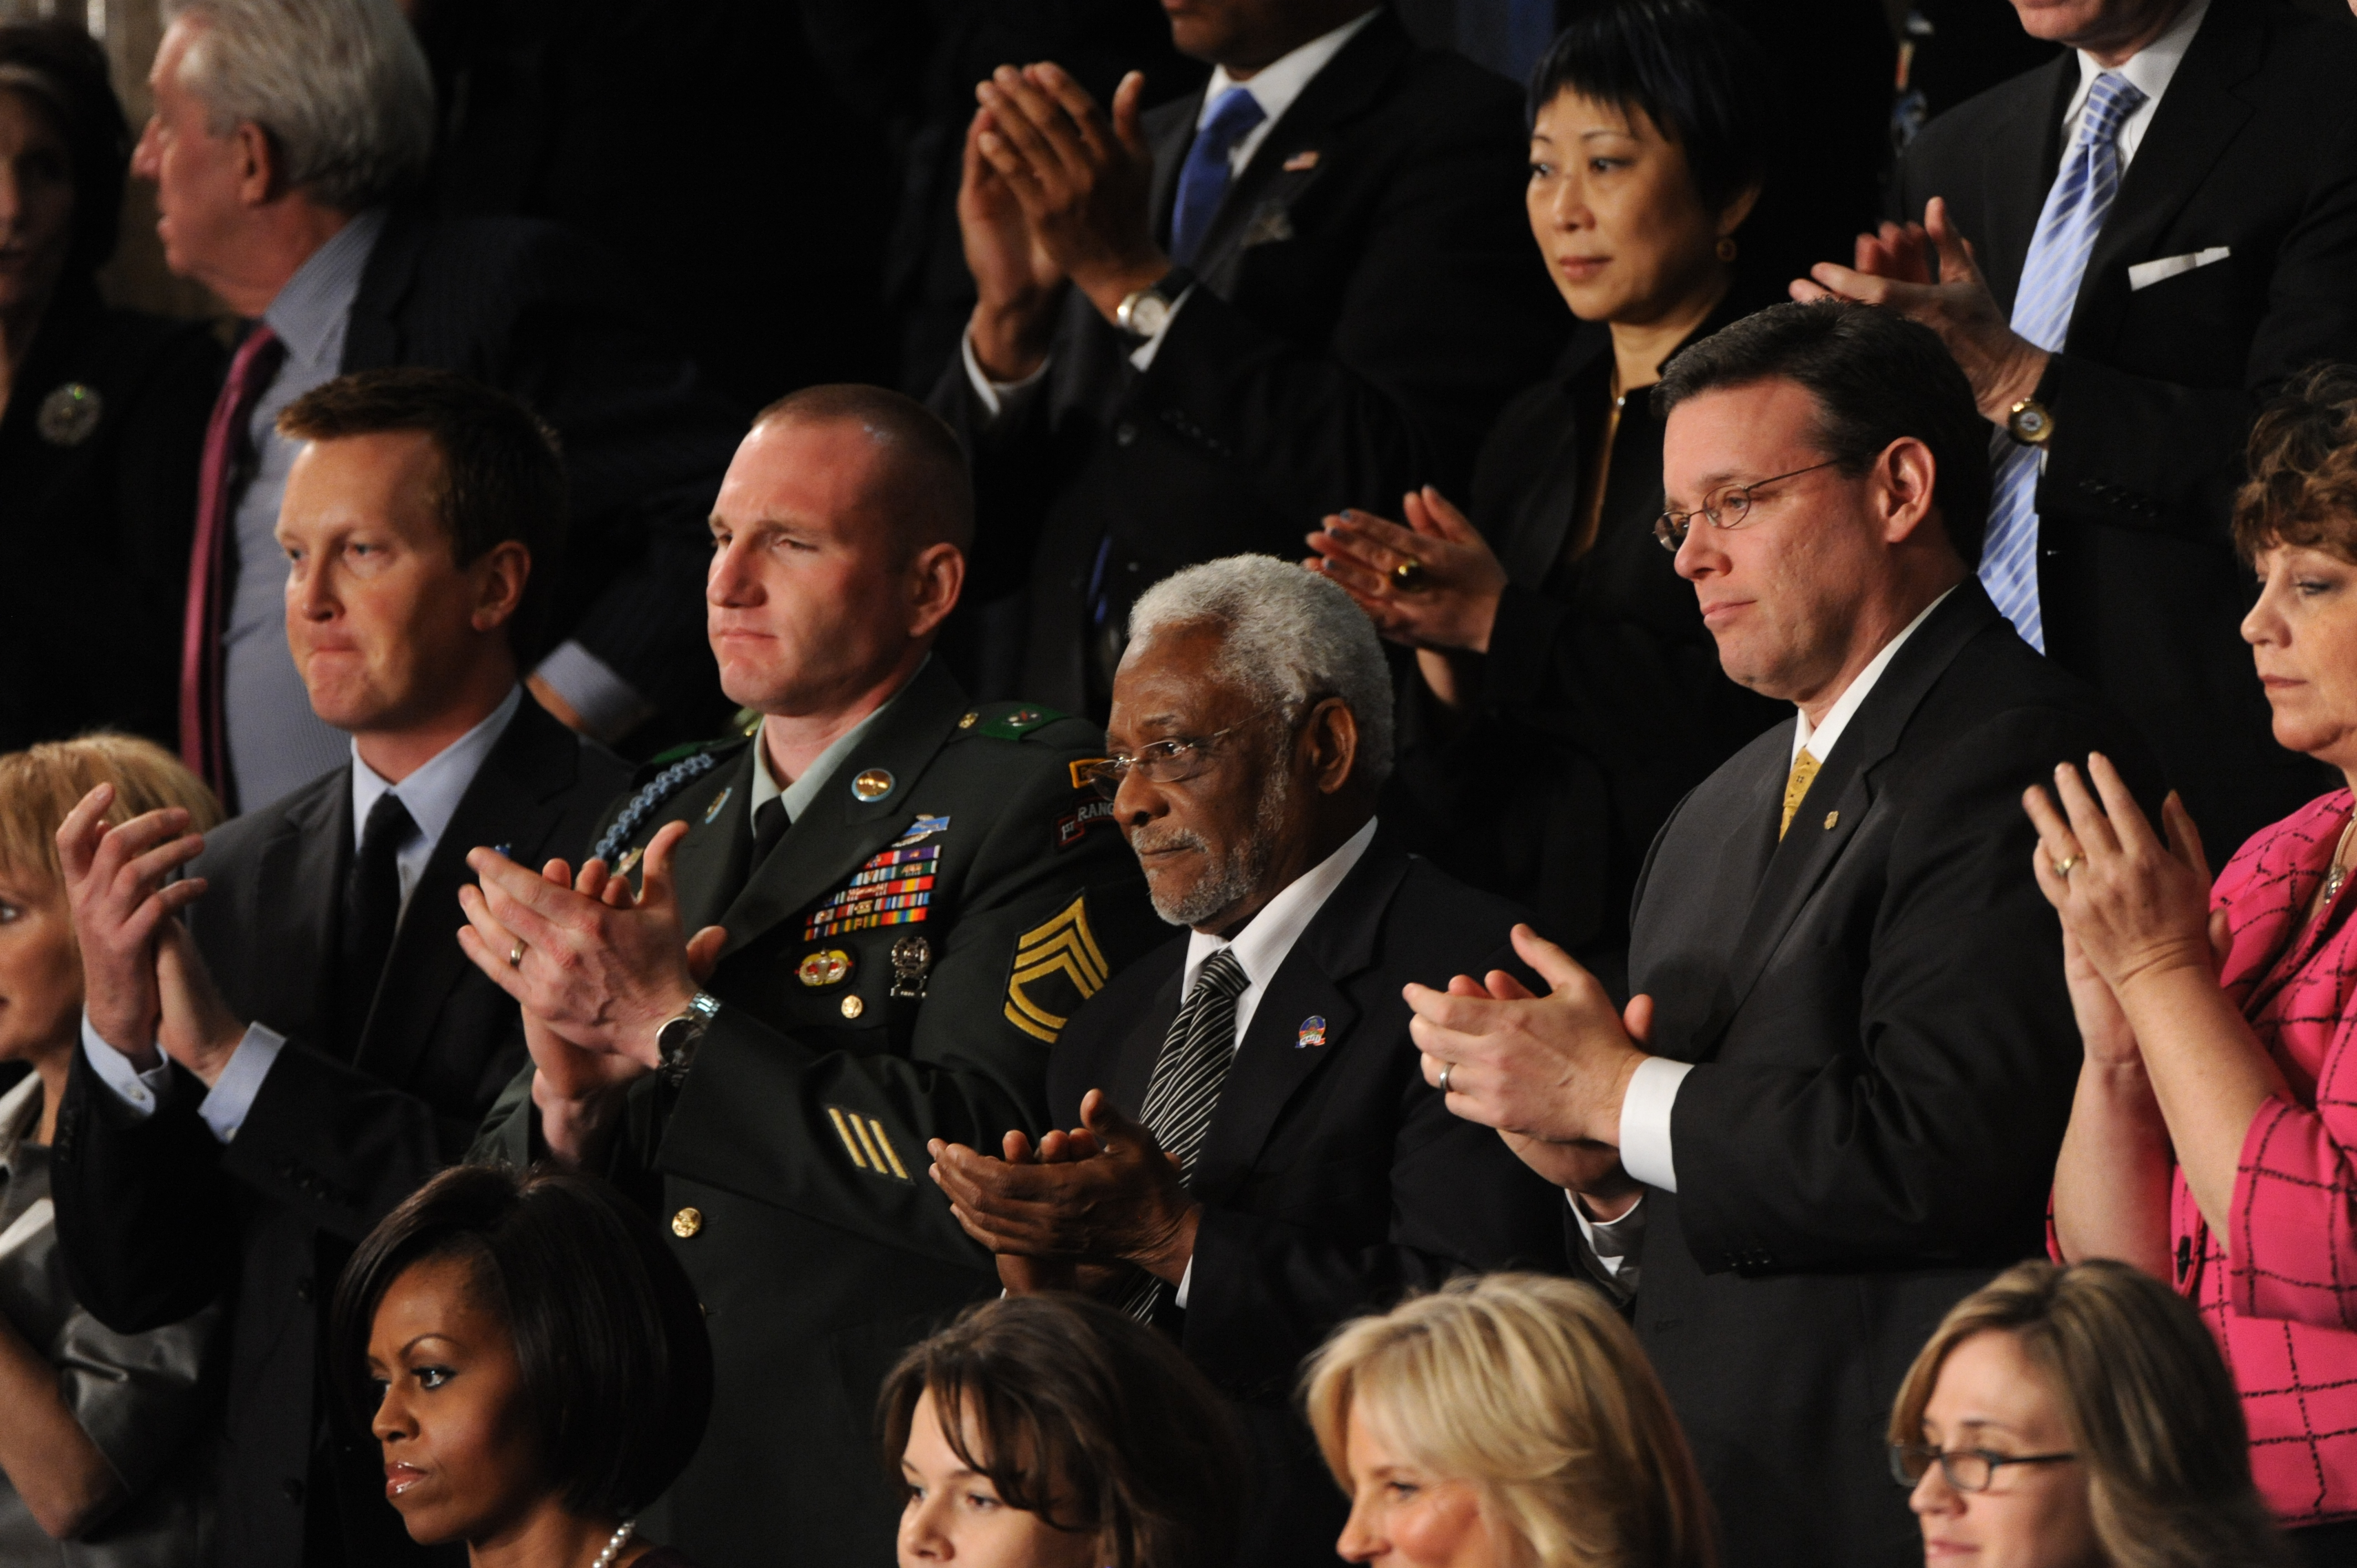 The Ambassador to Haiti, Raymond Joseph (center) attends President Obama's State of the Union speech on Jan. 27, 2010. Joseph helped Haiti with its first democratic election in 1990 and championed post-earthquake reconstruction.